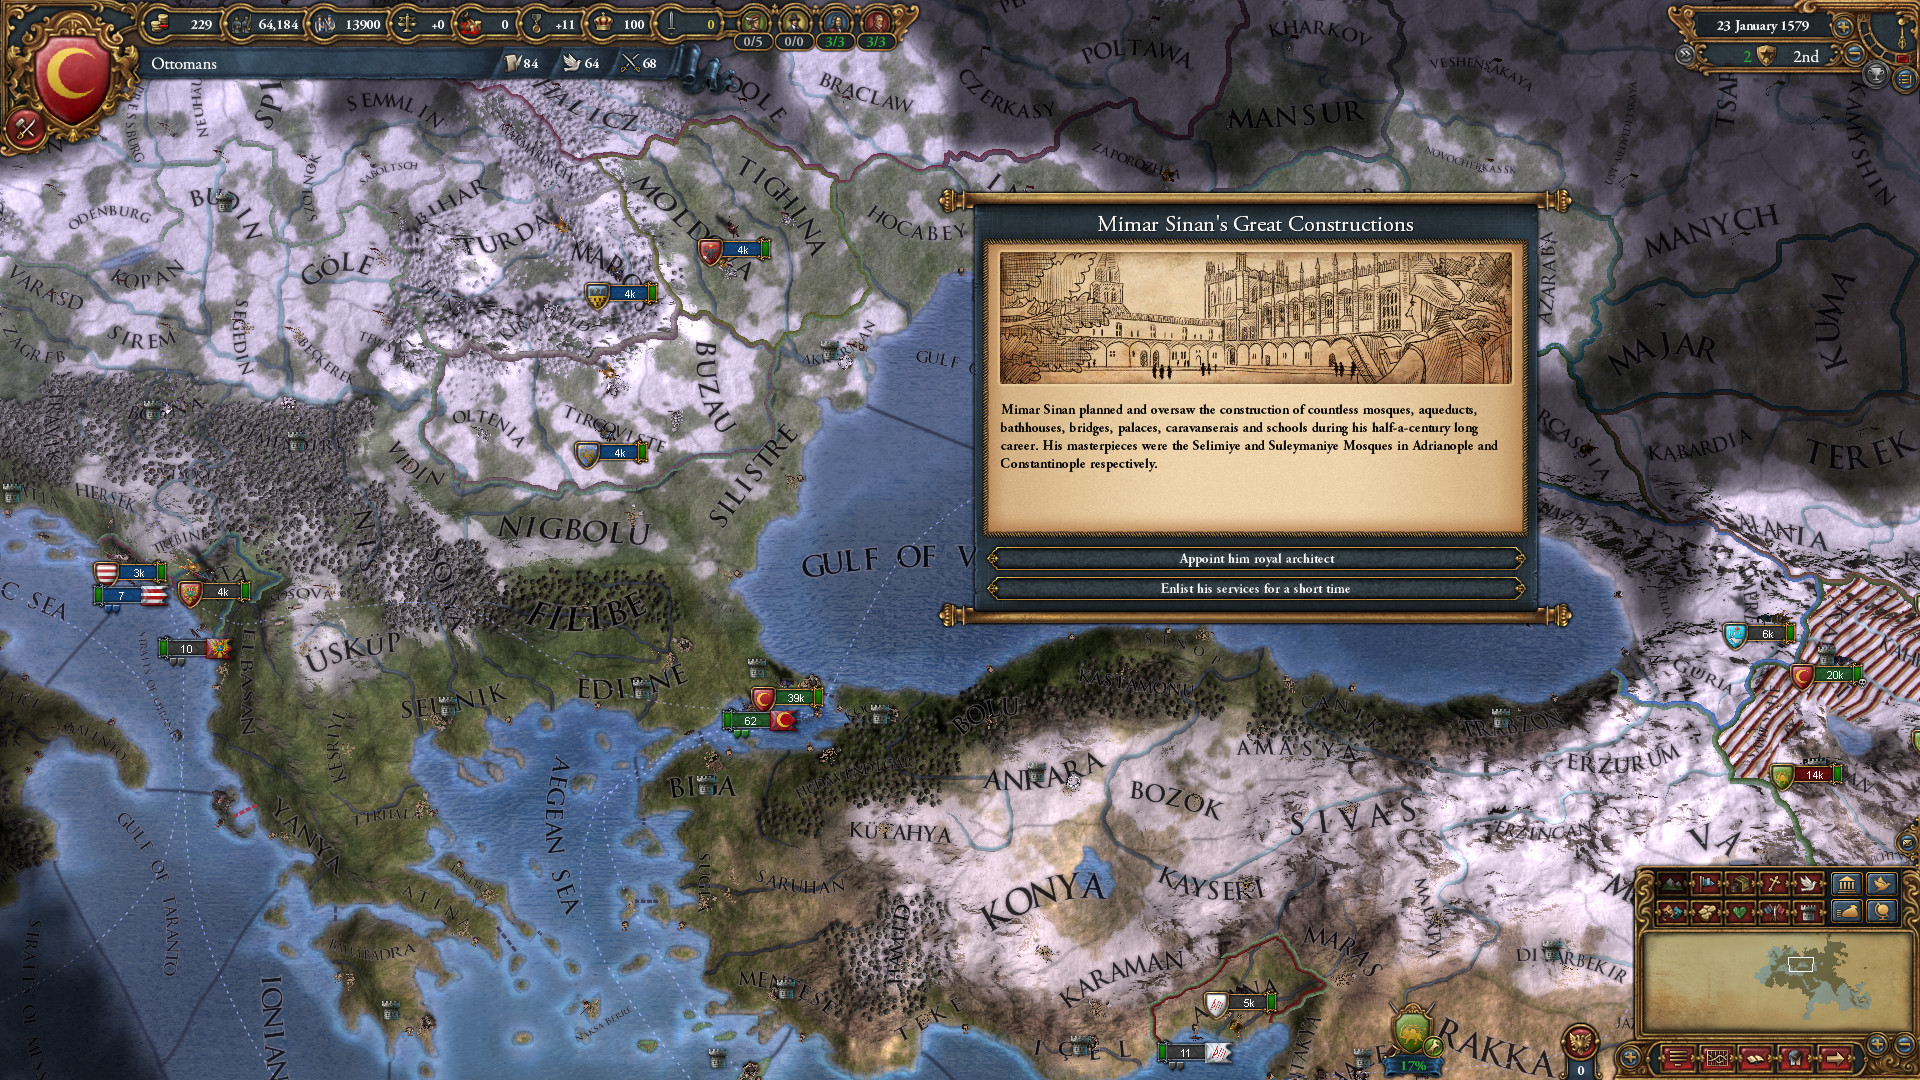 Dynamic Topography: EU4 features terrain that changes with the seasons.